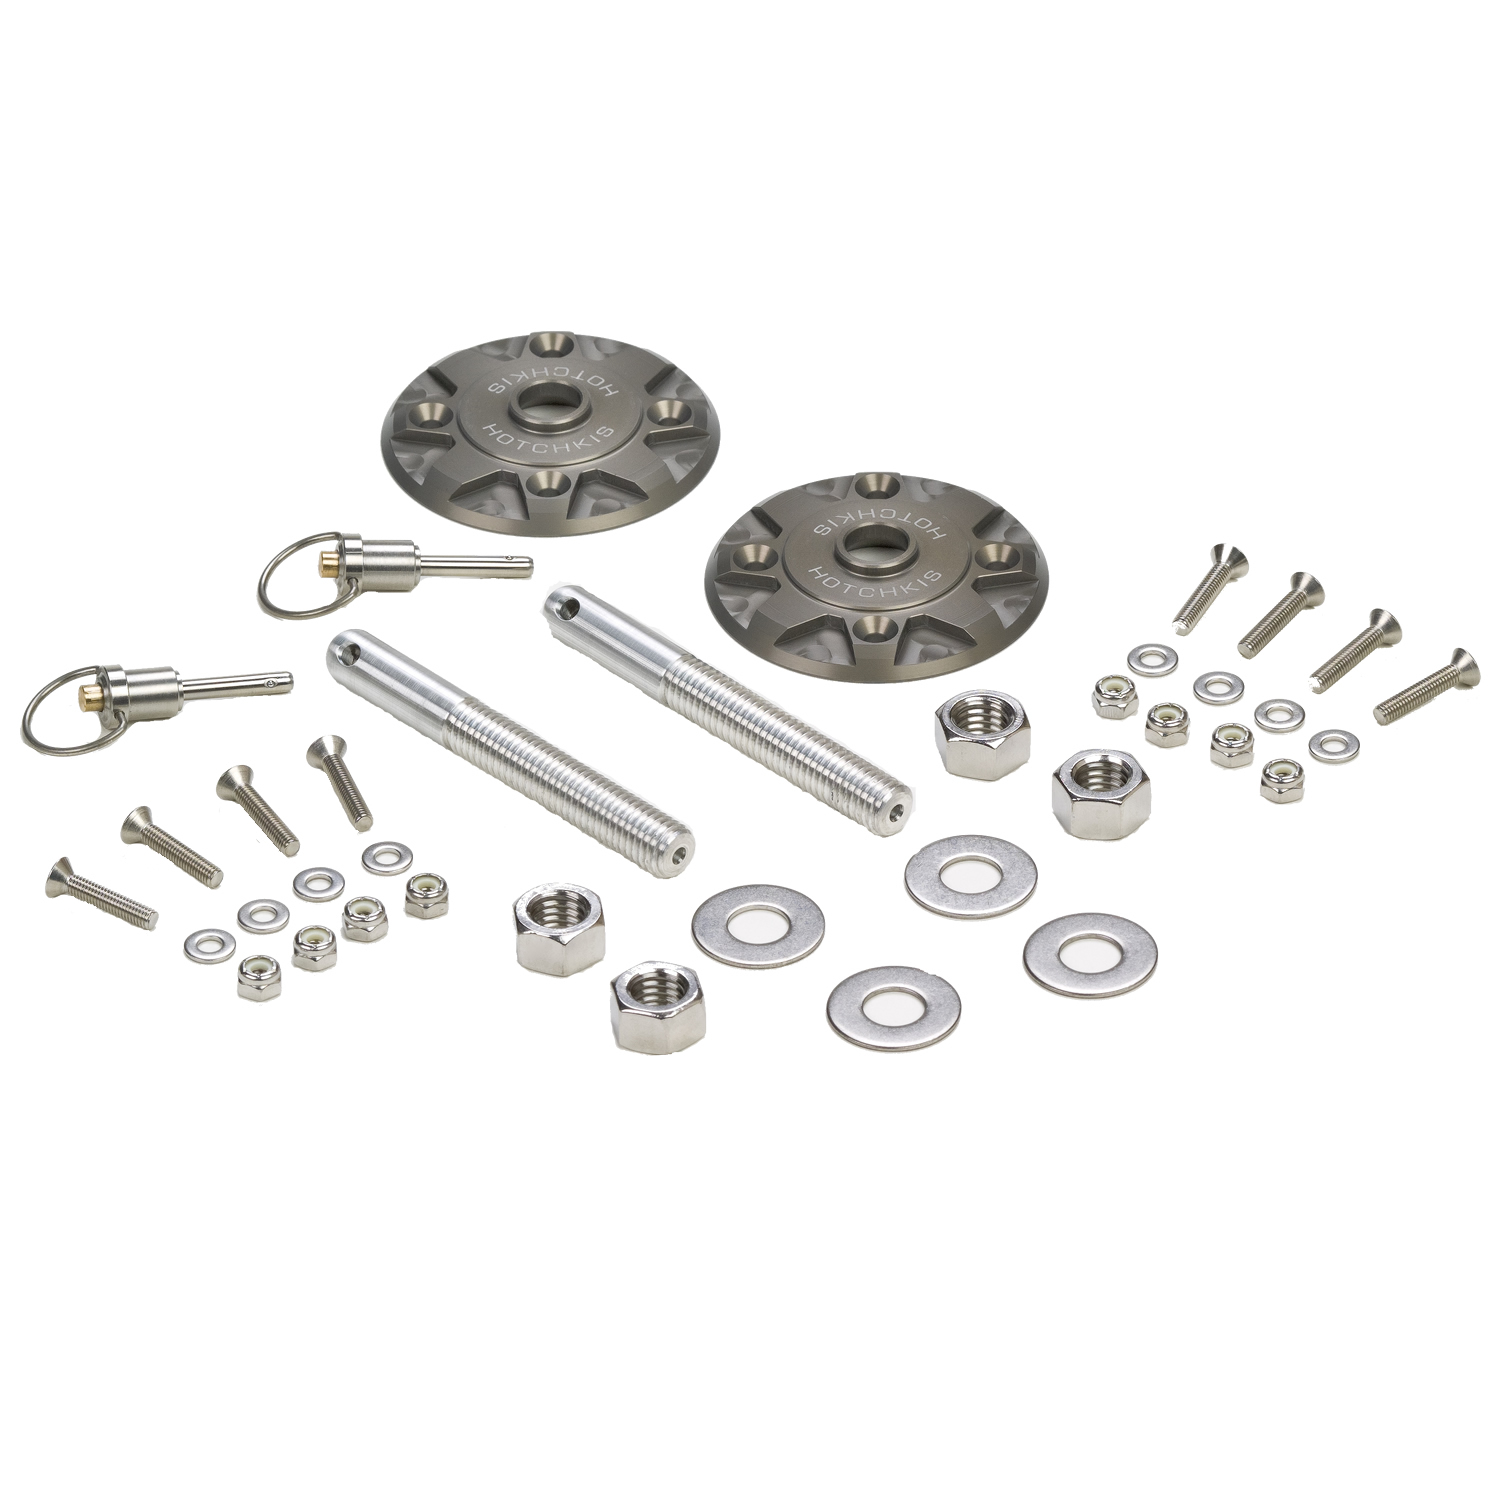 Quick Release Billet Hood Pin Kit from Hotchkis Sport Suspension